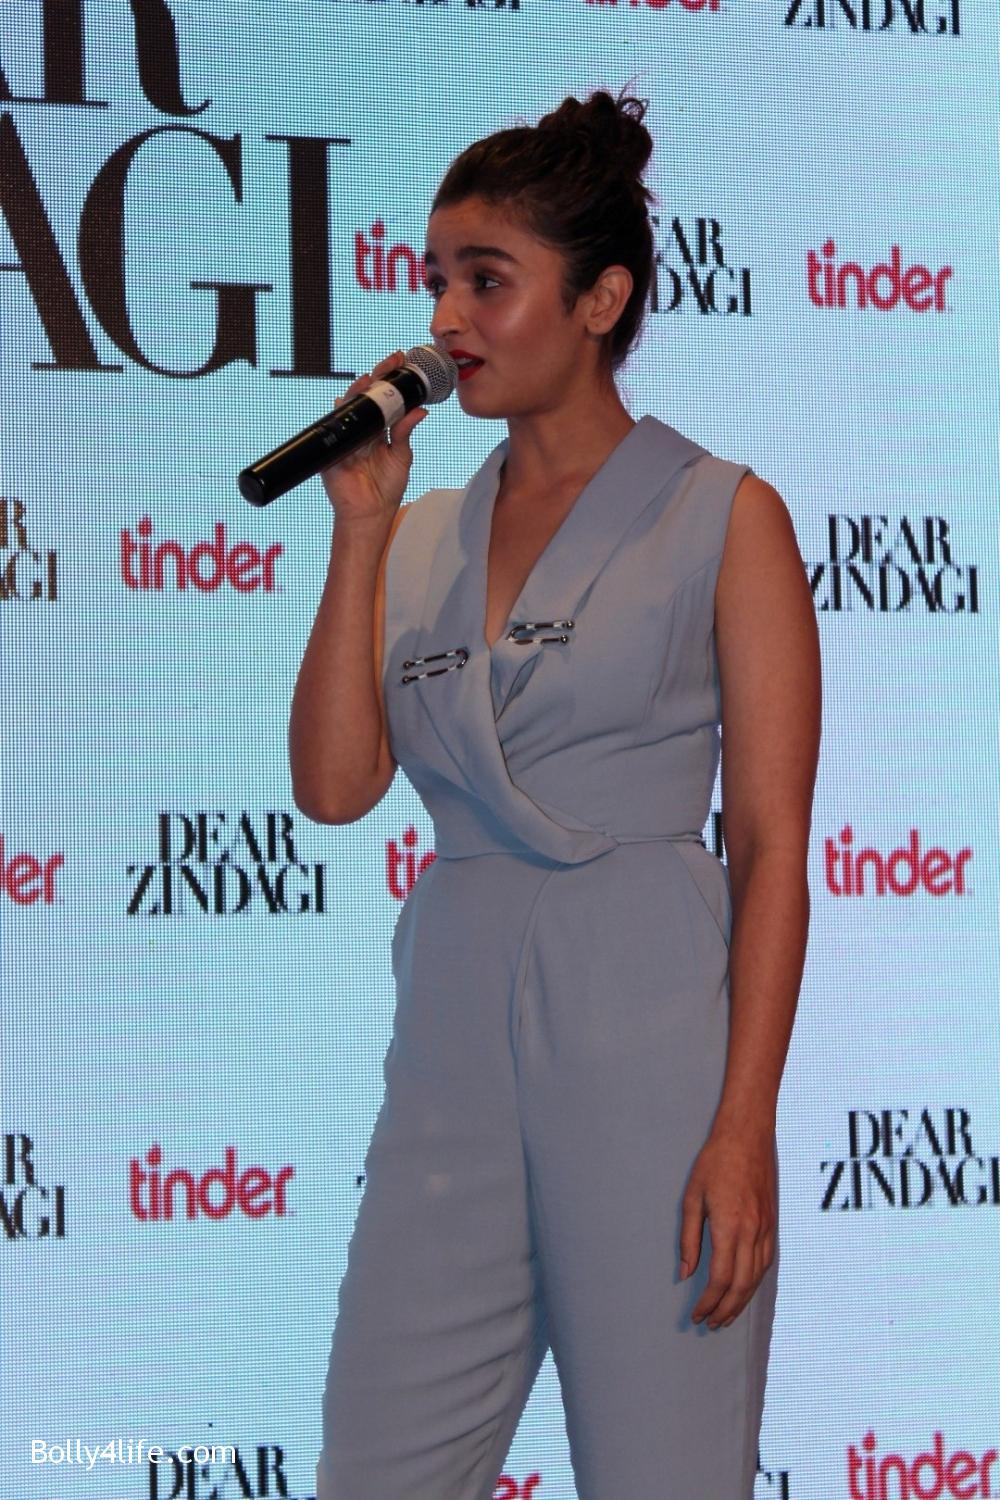 Alia-Bhatt-and-Kunal-Kapoor-during-promotion-of-film-Dear-Zindagi-7.jpg